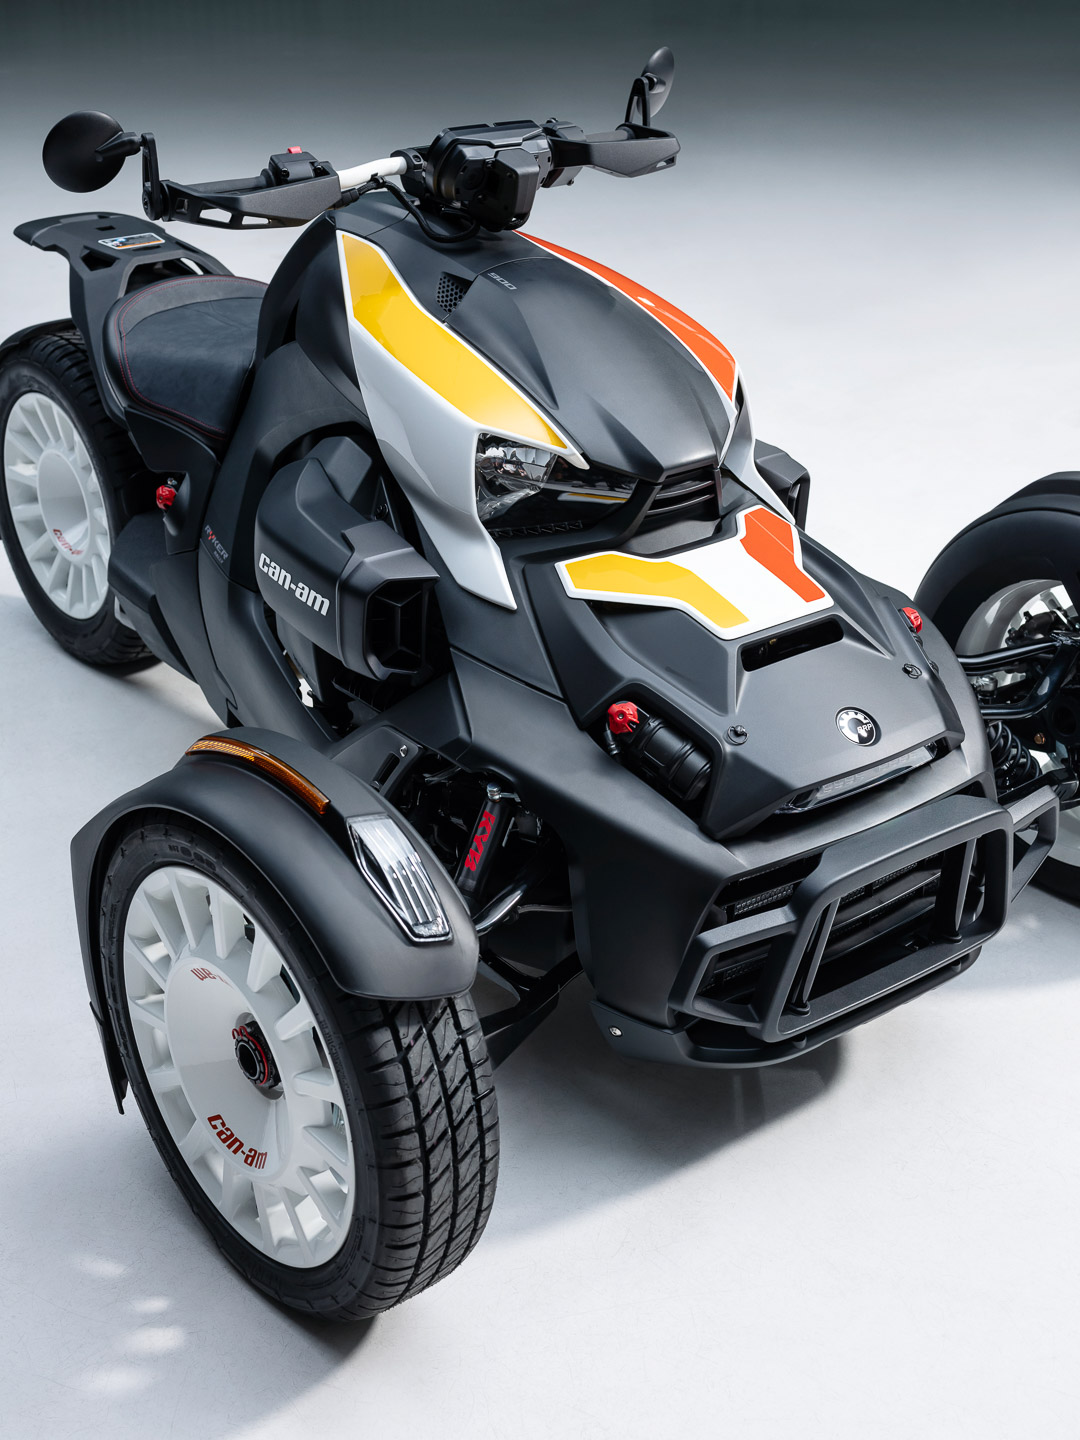 2022 Can-Am Ryker Rally First Look: MSRP, Price, Colors, Specs